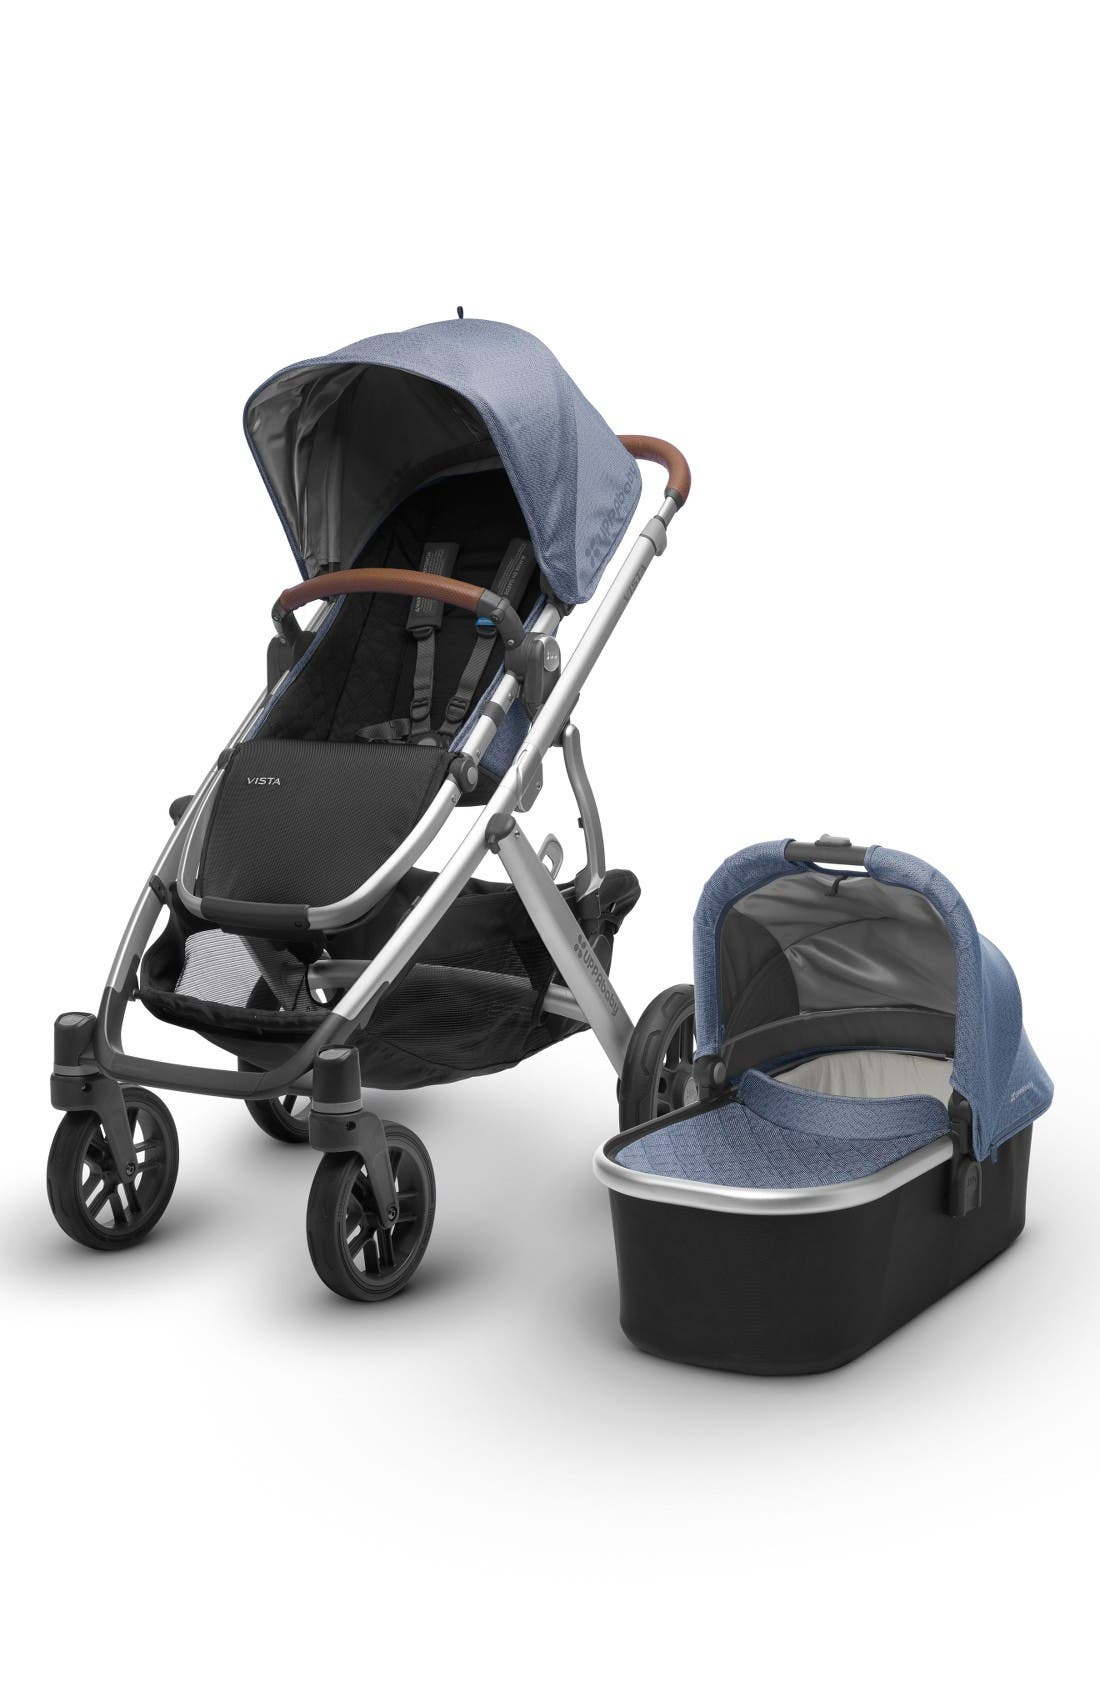 UPPAbaby 2017 VISTA Henry Aluminum Frame Convertible Stroller with Bassinet & Toddler Seat